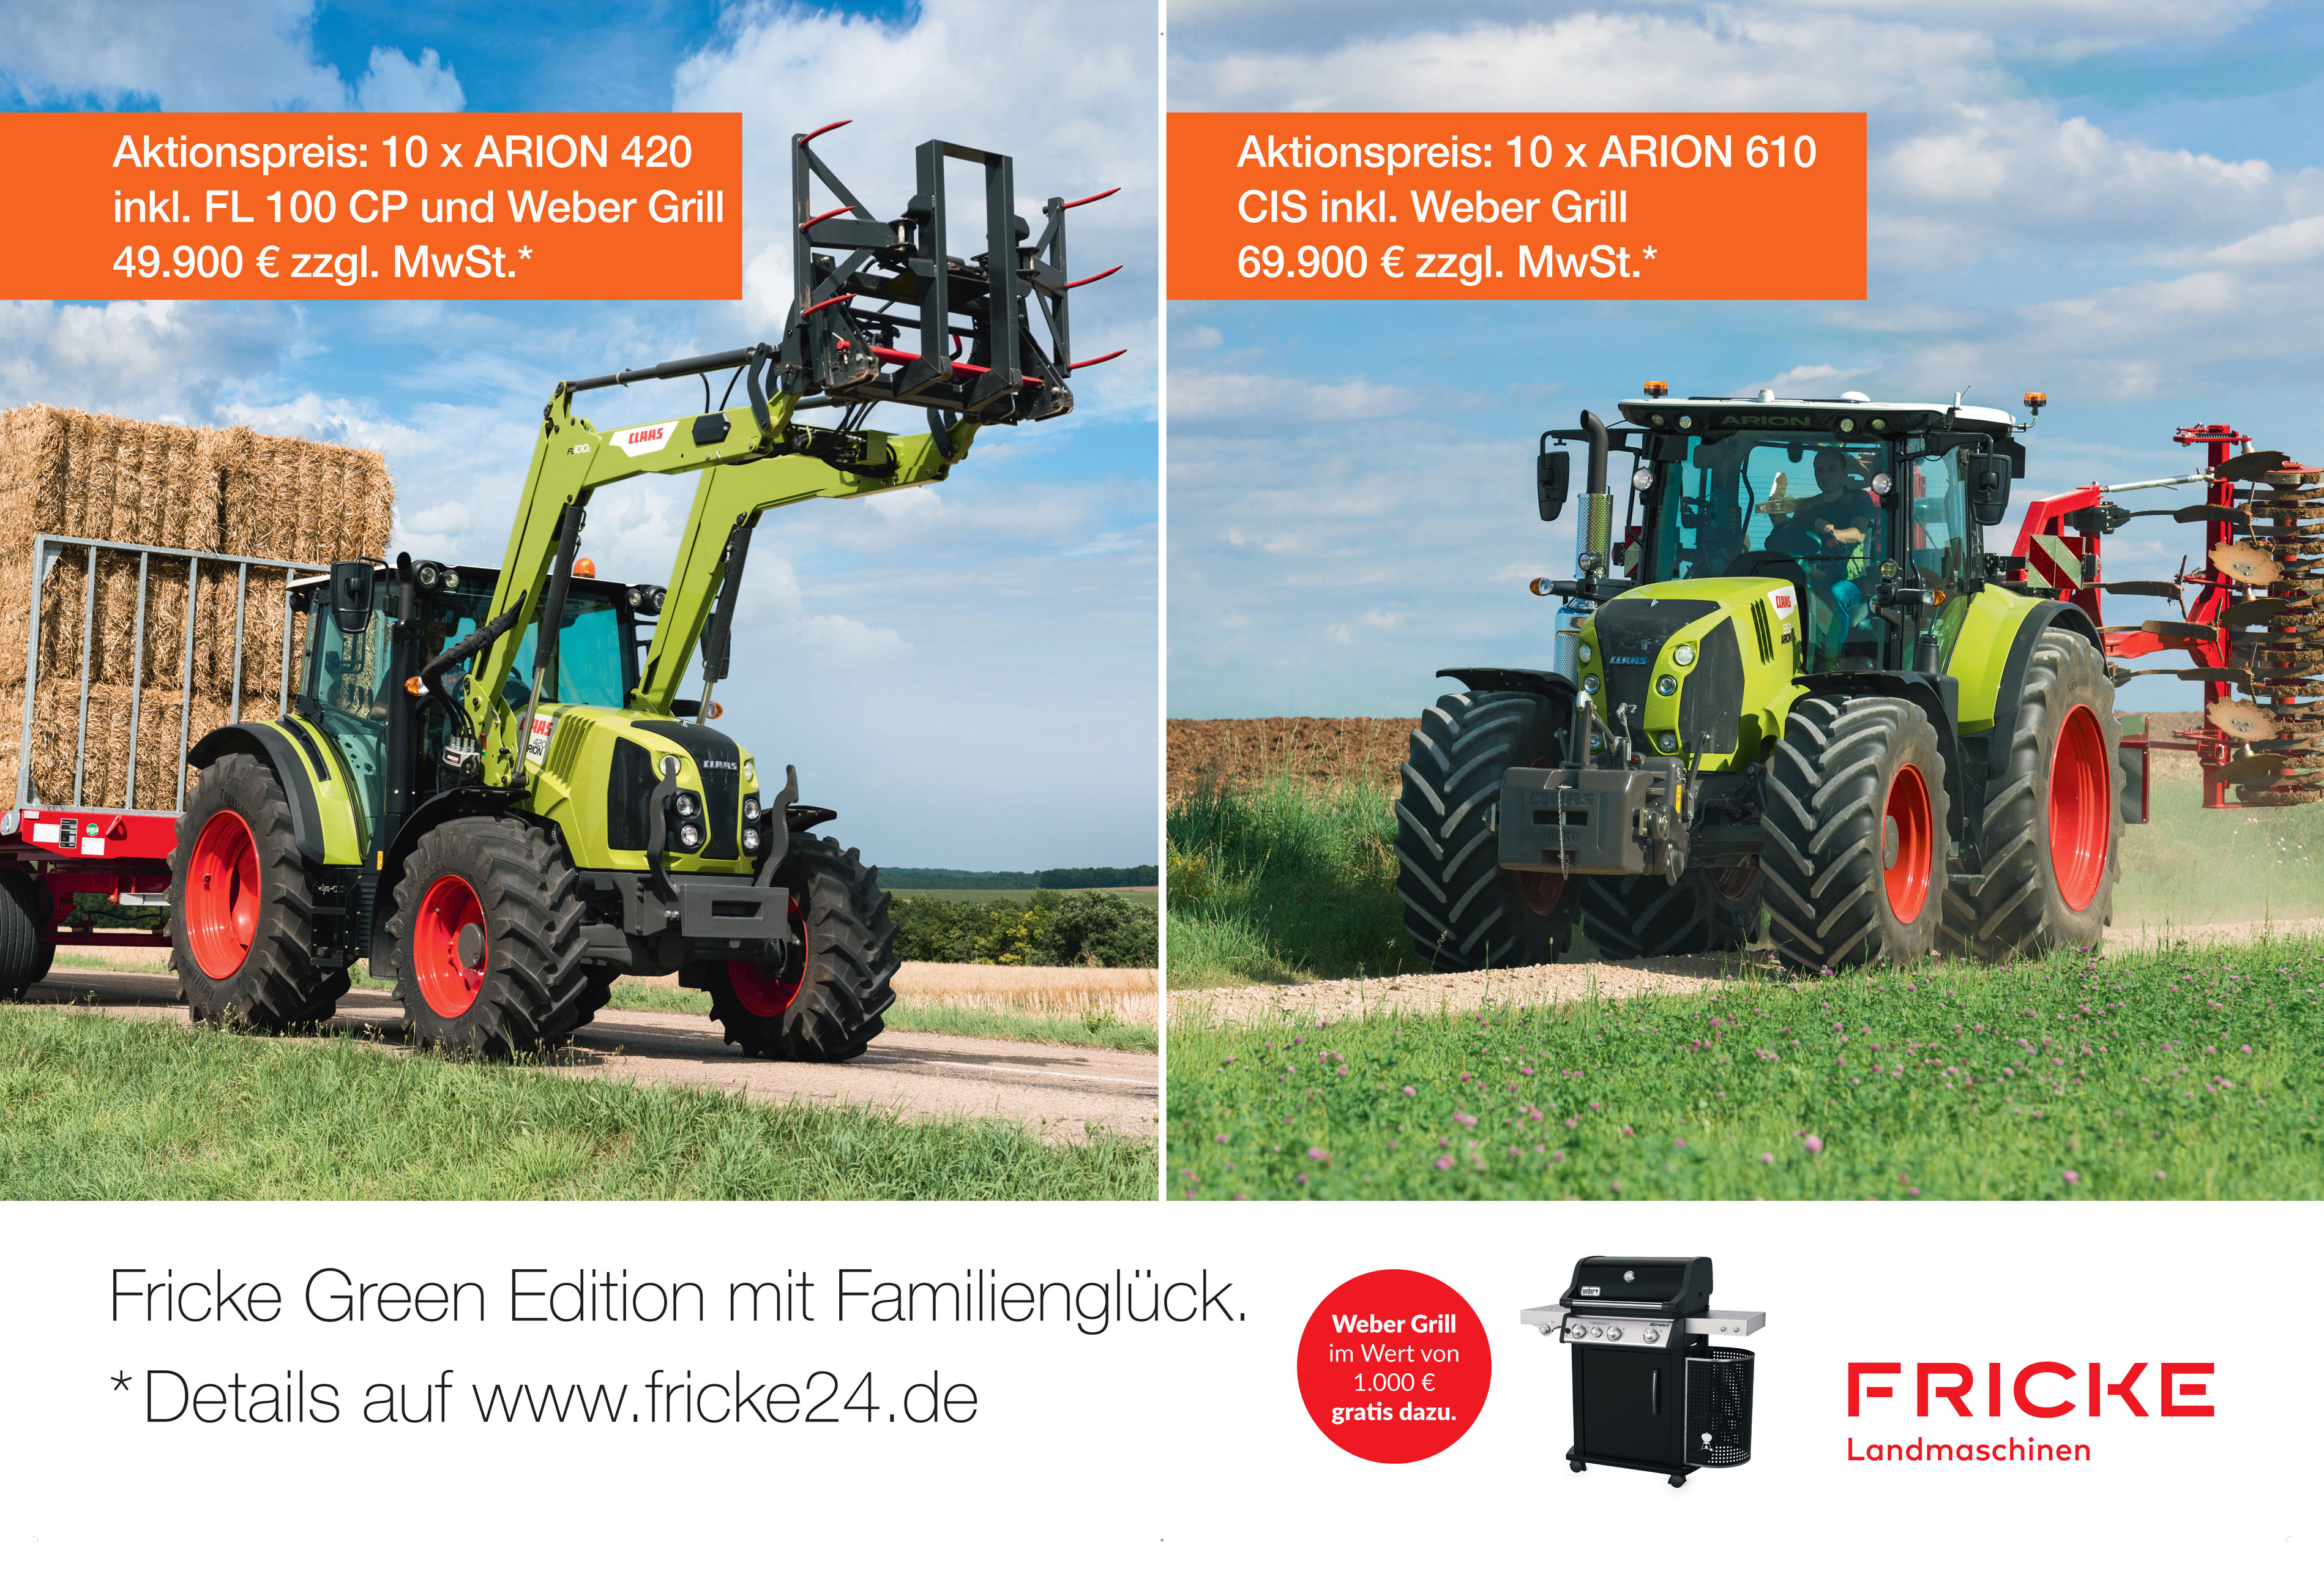 Fricke Green Edition mit Familienglück